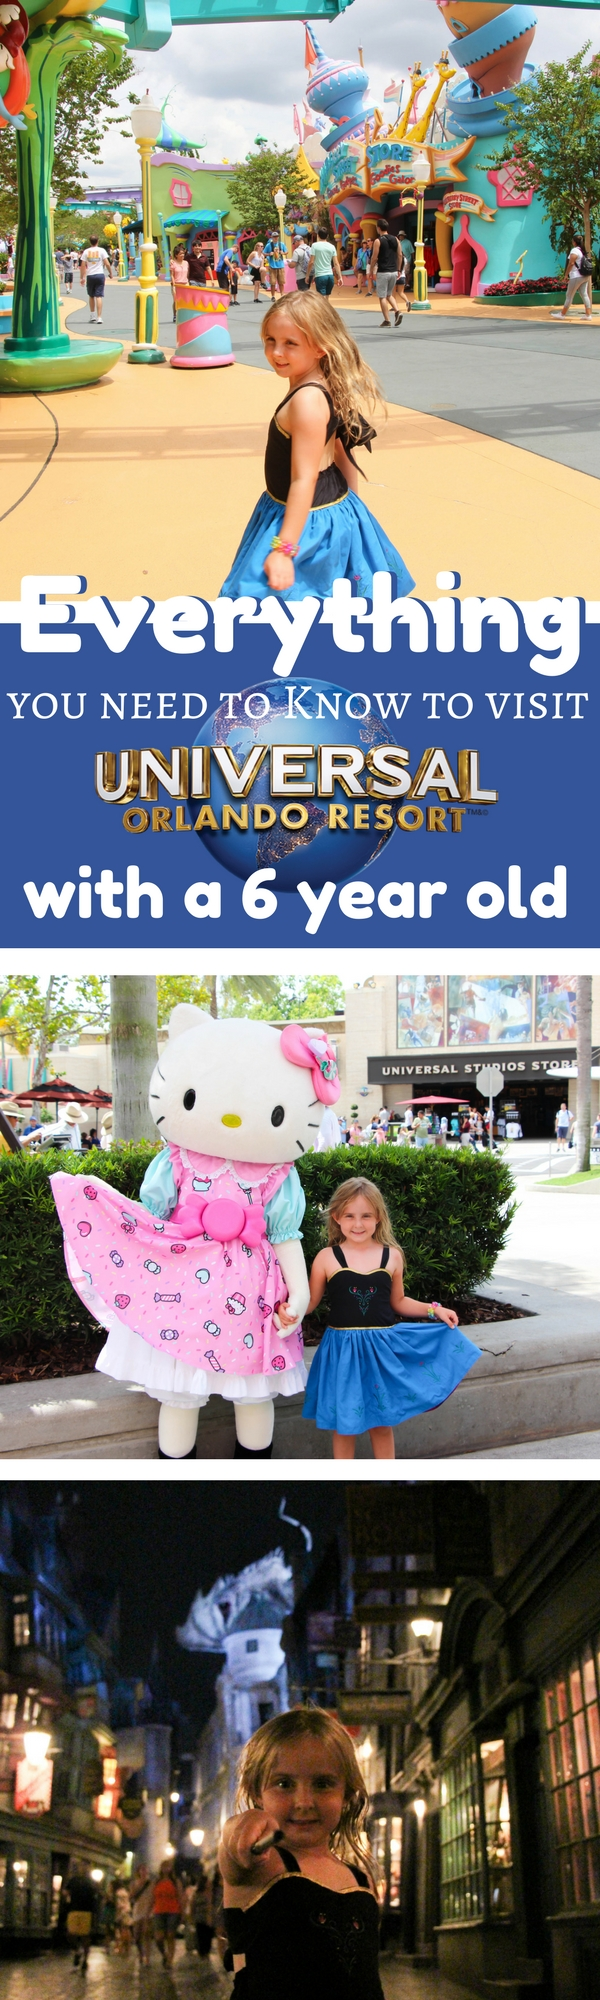 Universal Studios Vacation Planning for Parents with young kids - the best Universal Studios rides for kids, kid-friendly snacks, what to pack and more